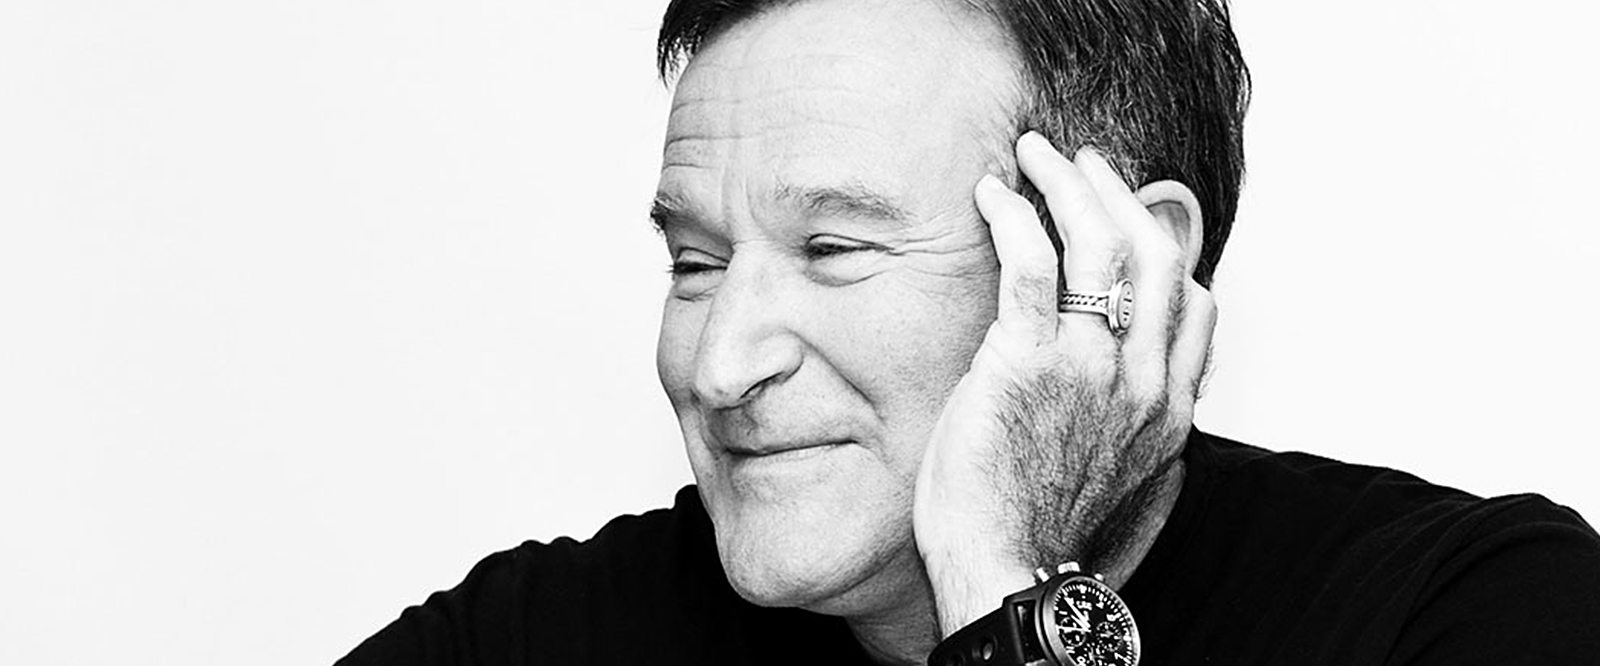 David Sheehan Remembers And Relives Memorable Moments With Robin Williams